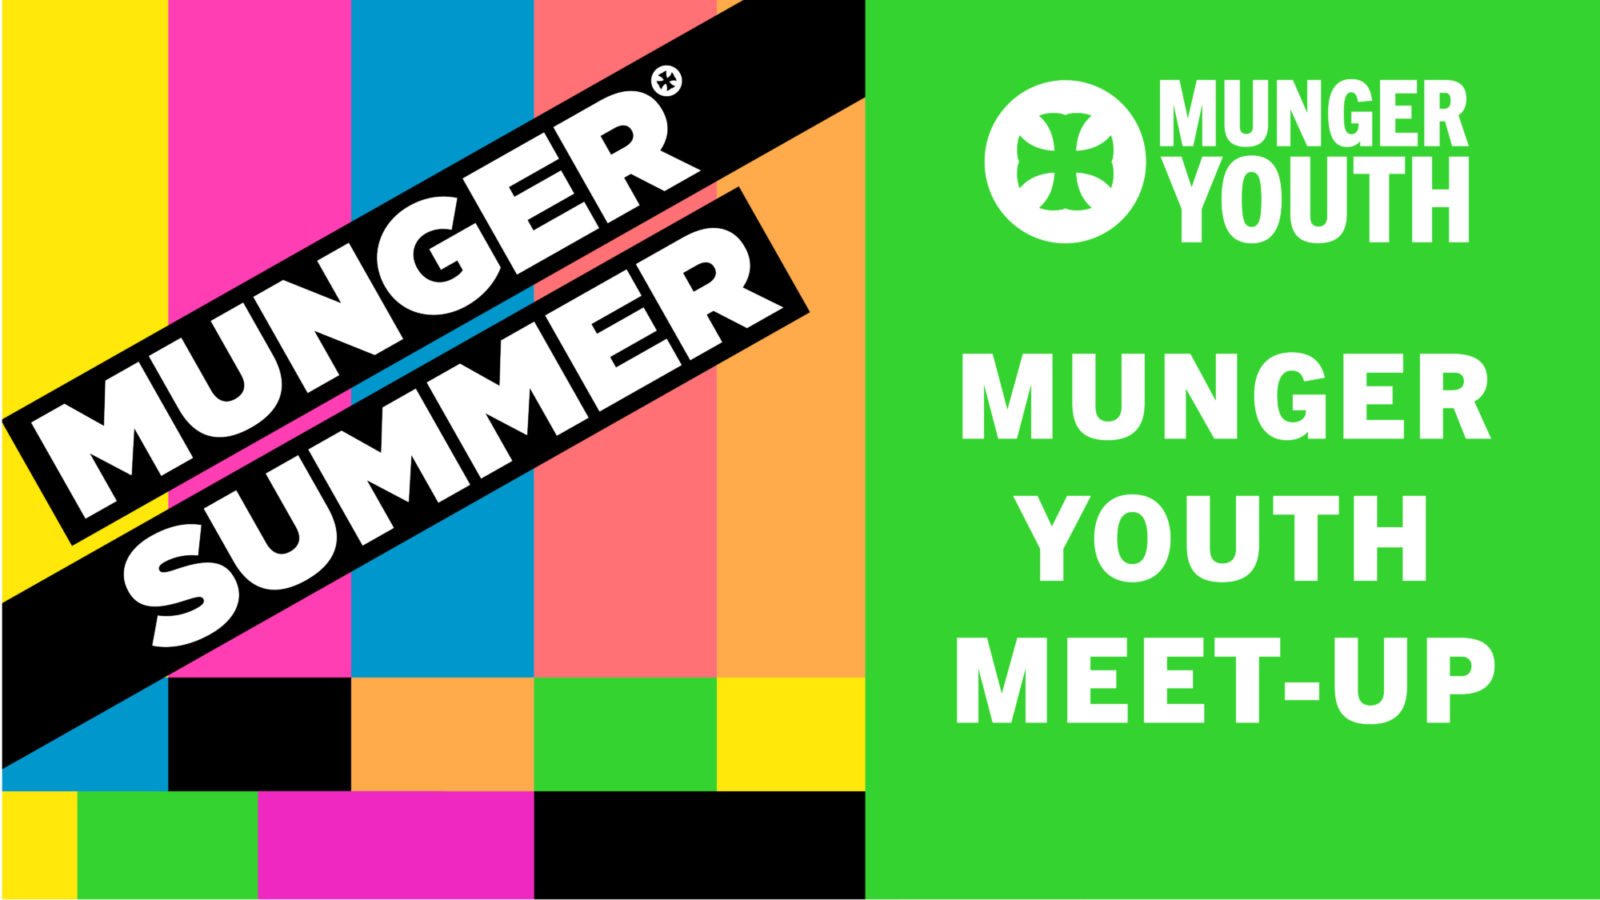 Munger Youth Meet Up